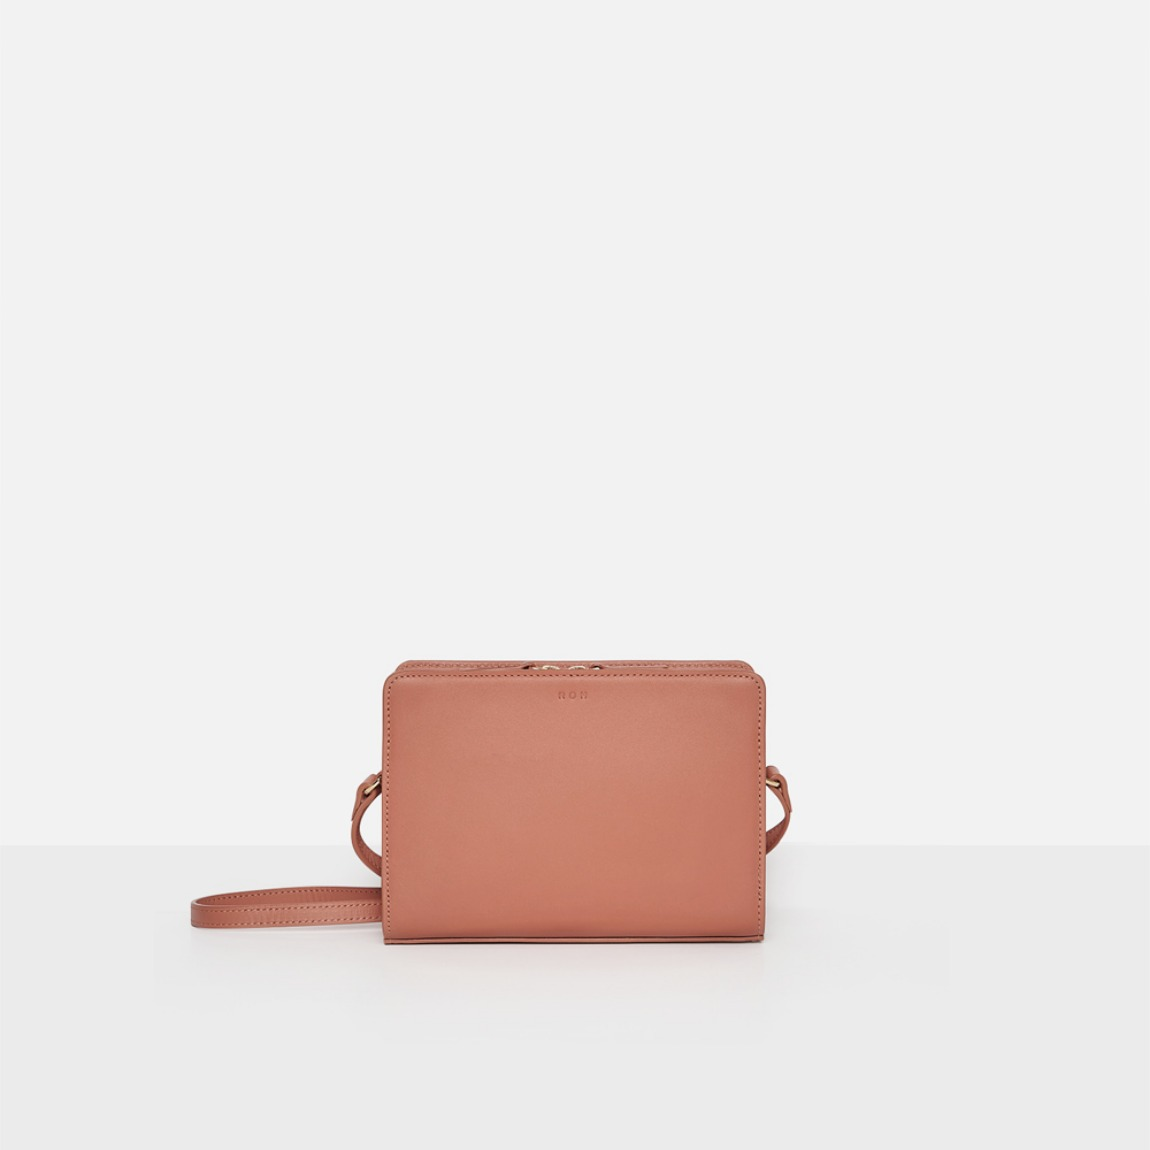 Square small shoulder bag Amber coral